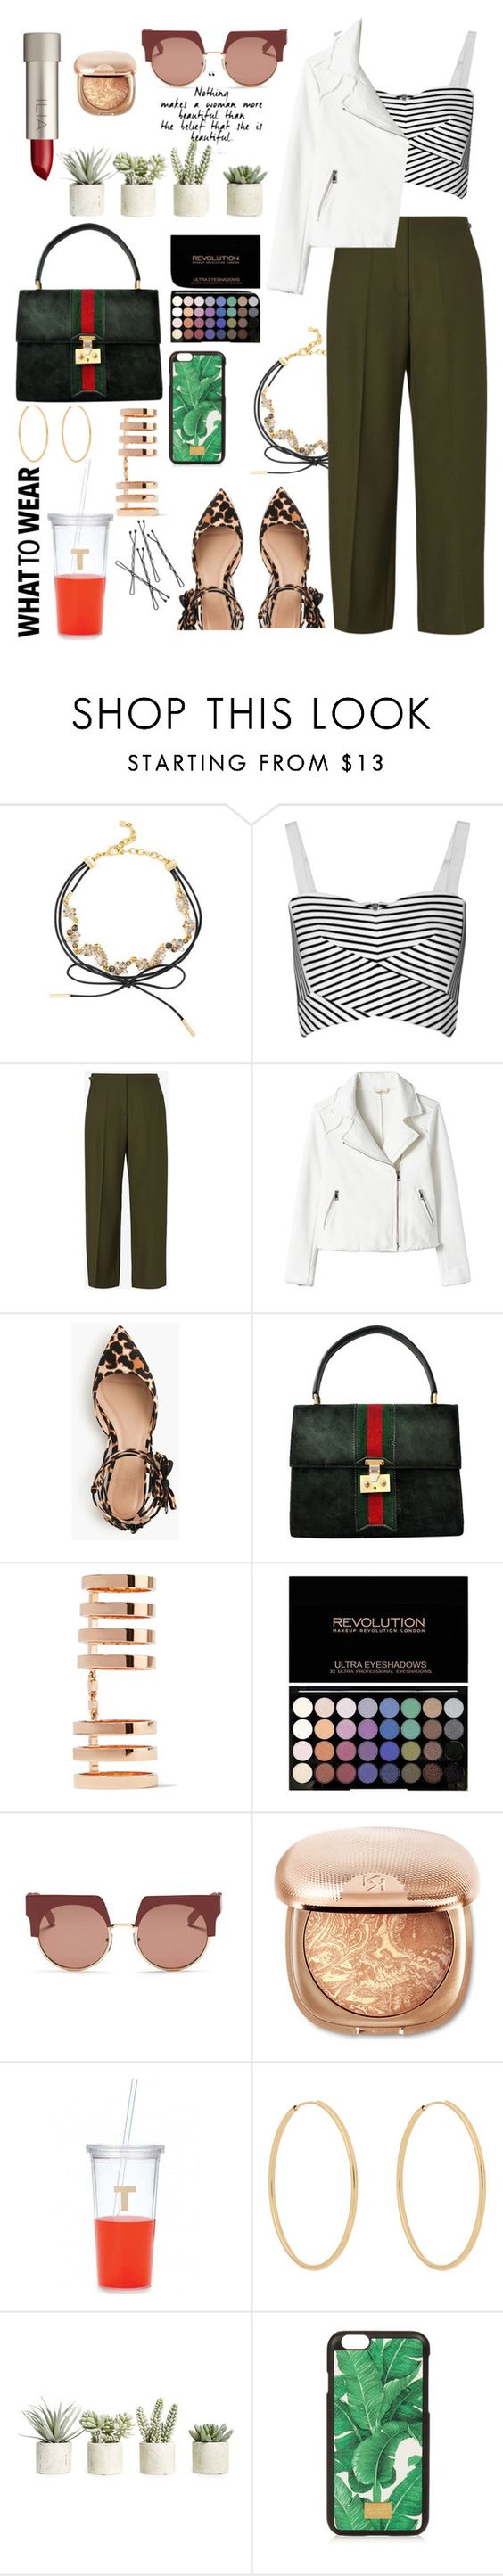 """""""What to Wear with Flats"""" by meli111 on Polyvore featuring BaubleBar, Rebecca Minkoff, Maison Margiela, J.Crew, Gucci, Repossi, Ilia, Marni, Kate Spade and Loren Stewart"""